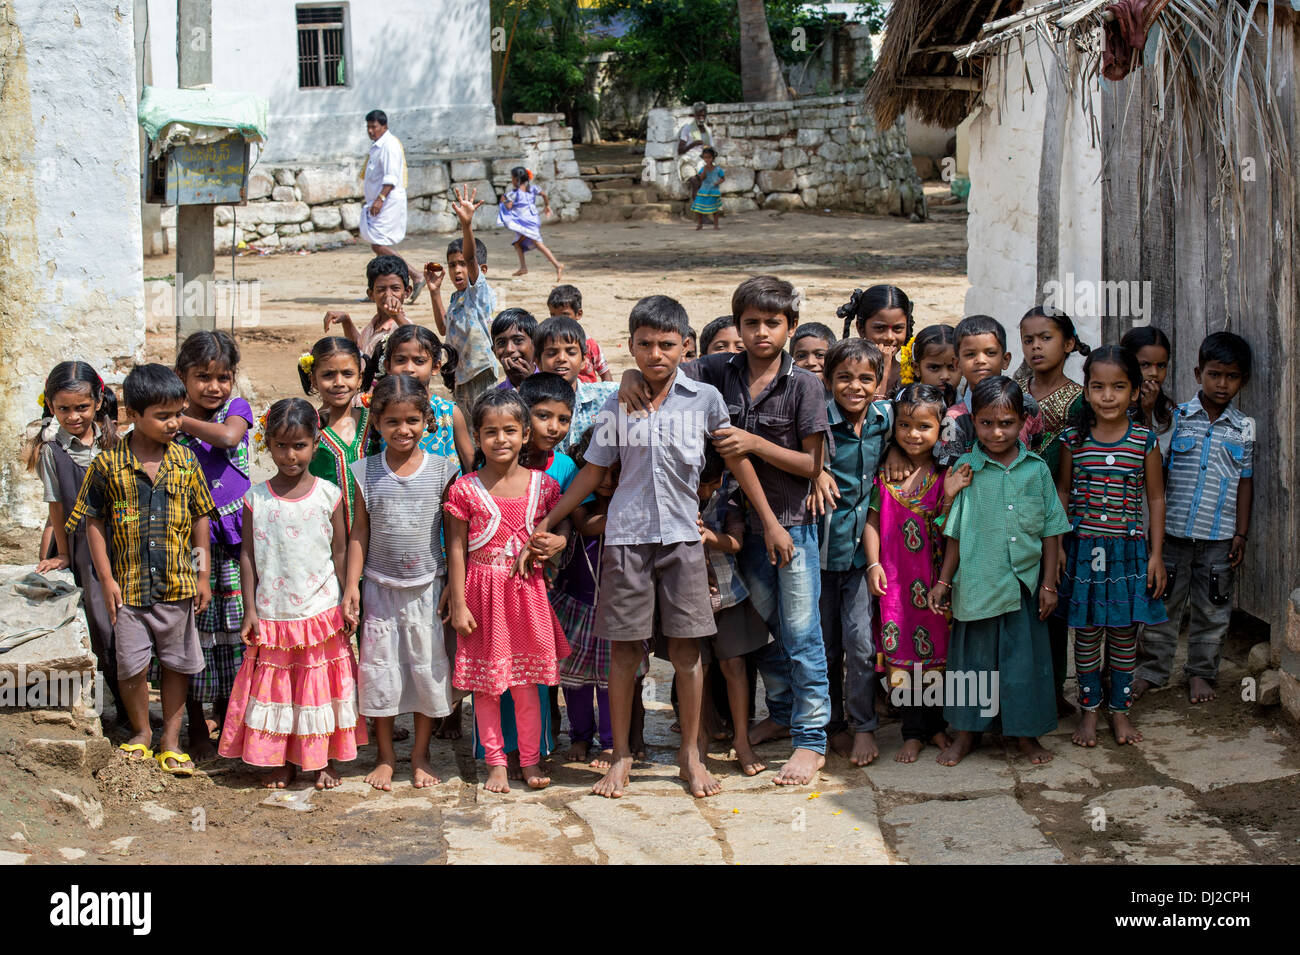 Happy young Indian children in a rural indian village. Andhra Pradesh, India - Stock Image